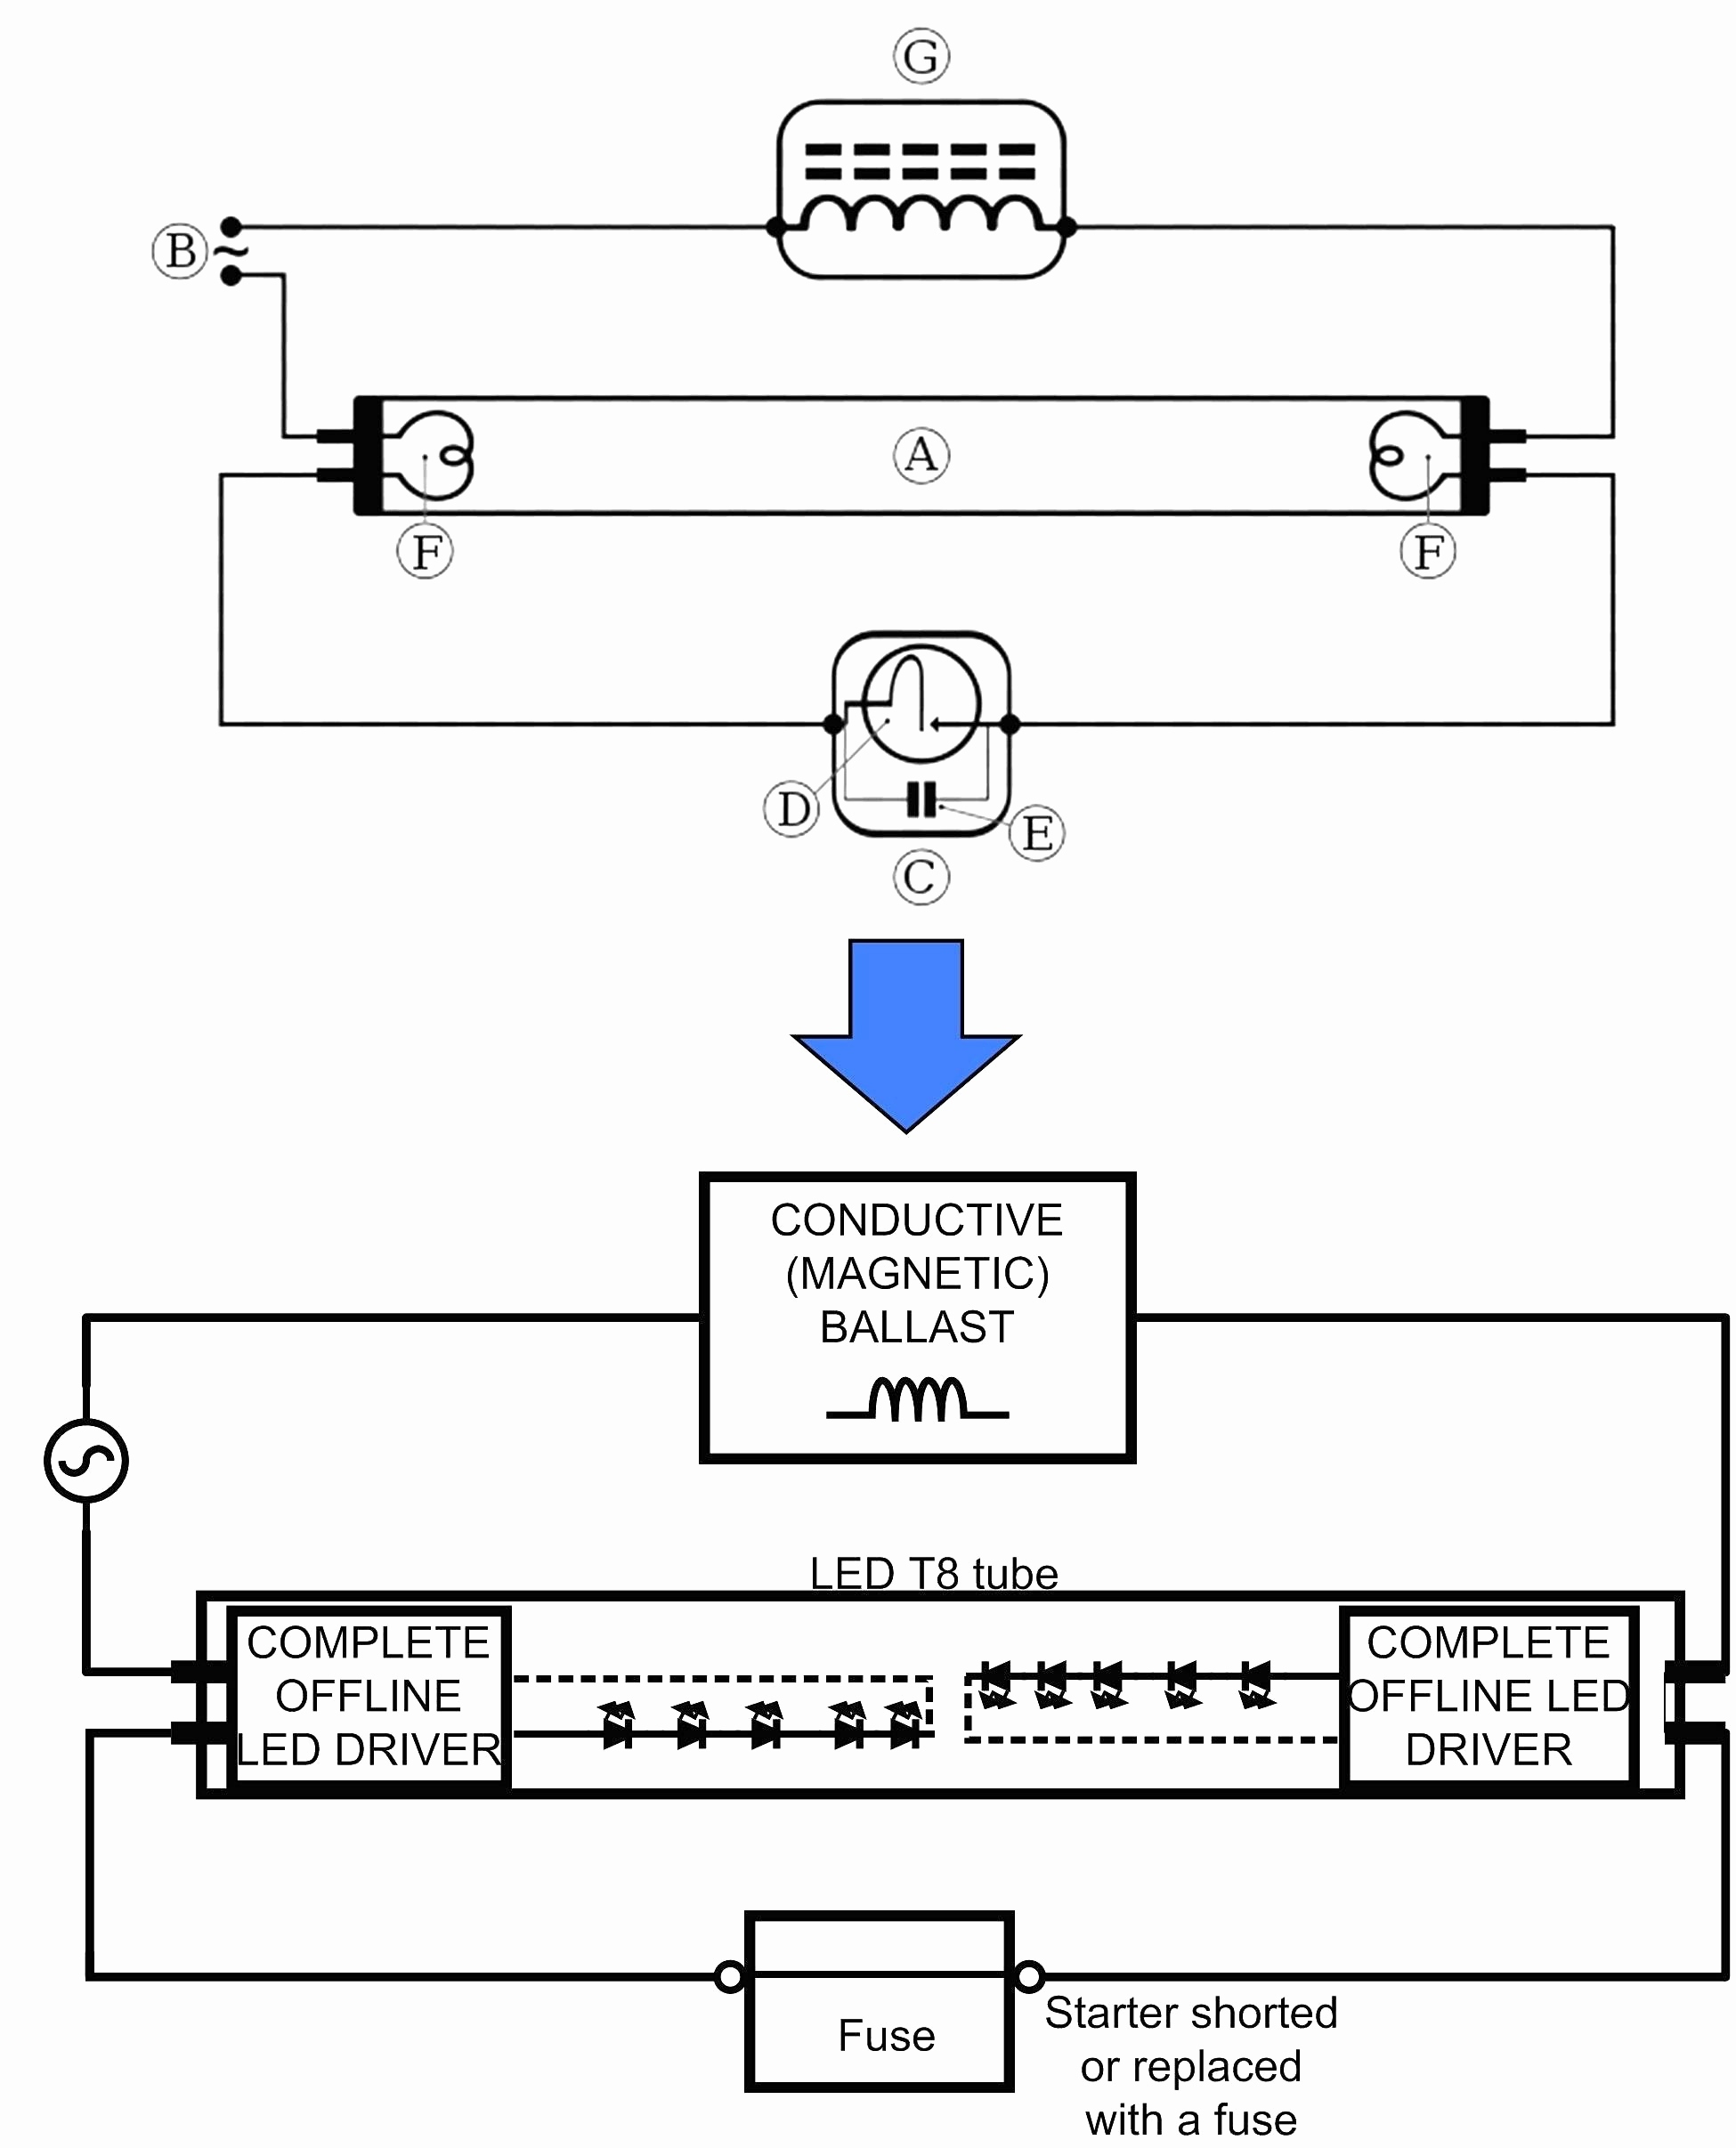 t8 electronic ballast wiring diagram | wiring diagram library - ballast  wiring diagram t8